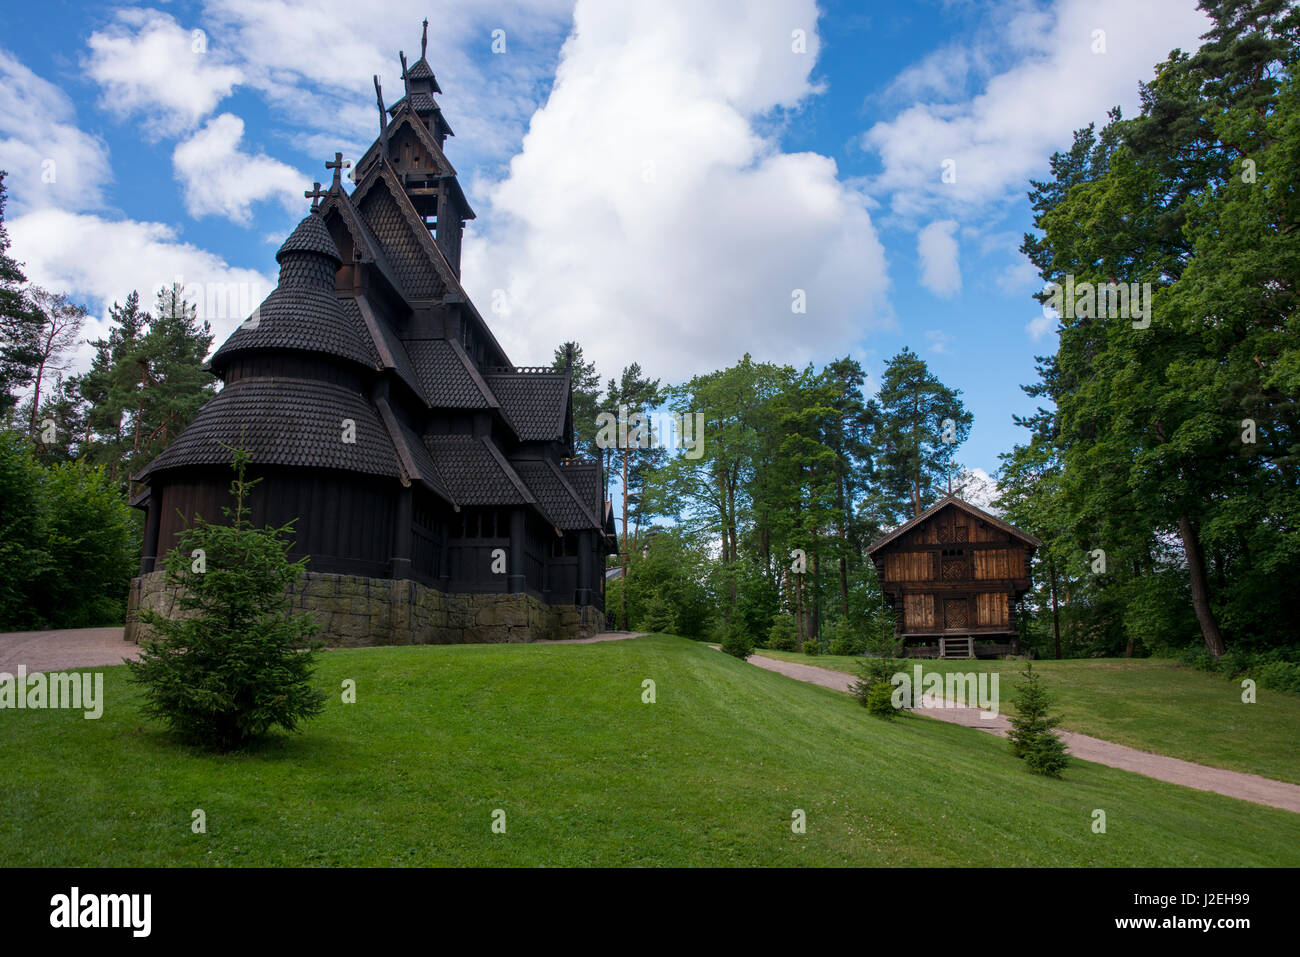 Norway, Oslo, Norsk Folk Museum (aka Norsk Folkemuseum). Historic wooden Stave Church from Gol, c.1200. (Large format - Stock Image